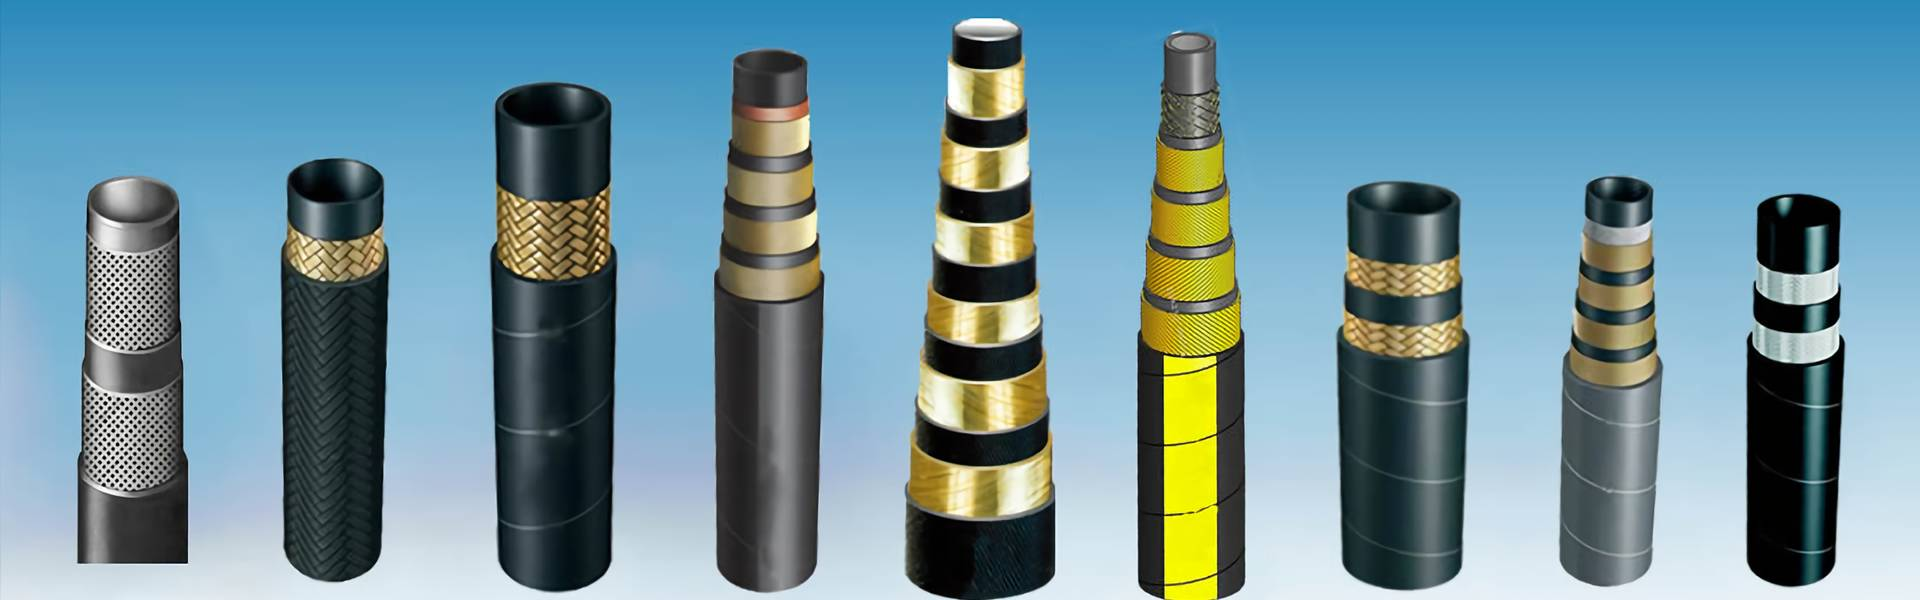 Hydraulic Hose - Spiral and Braided, Low to Super High Pressure